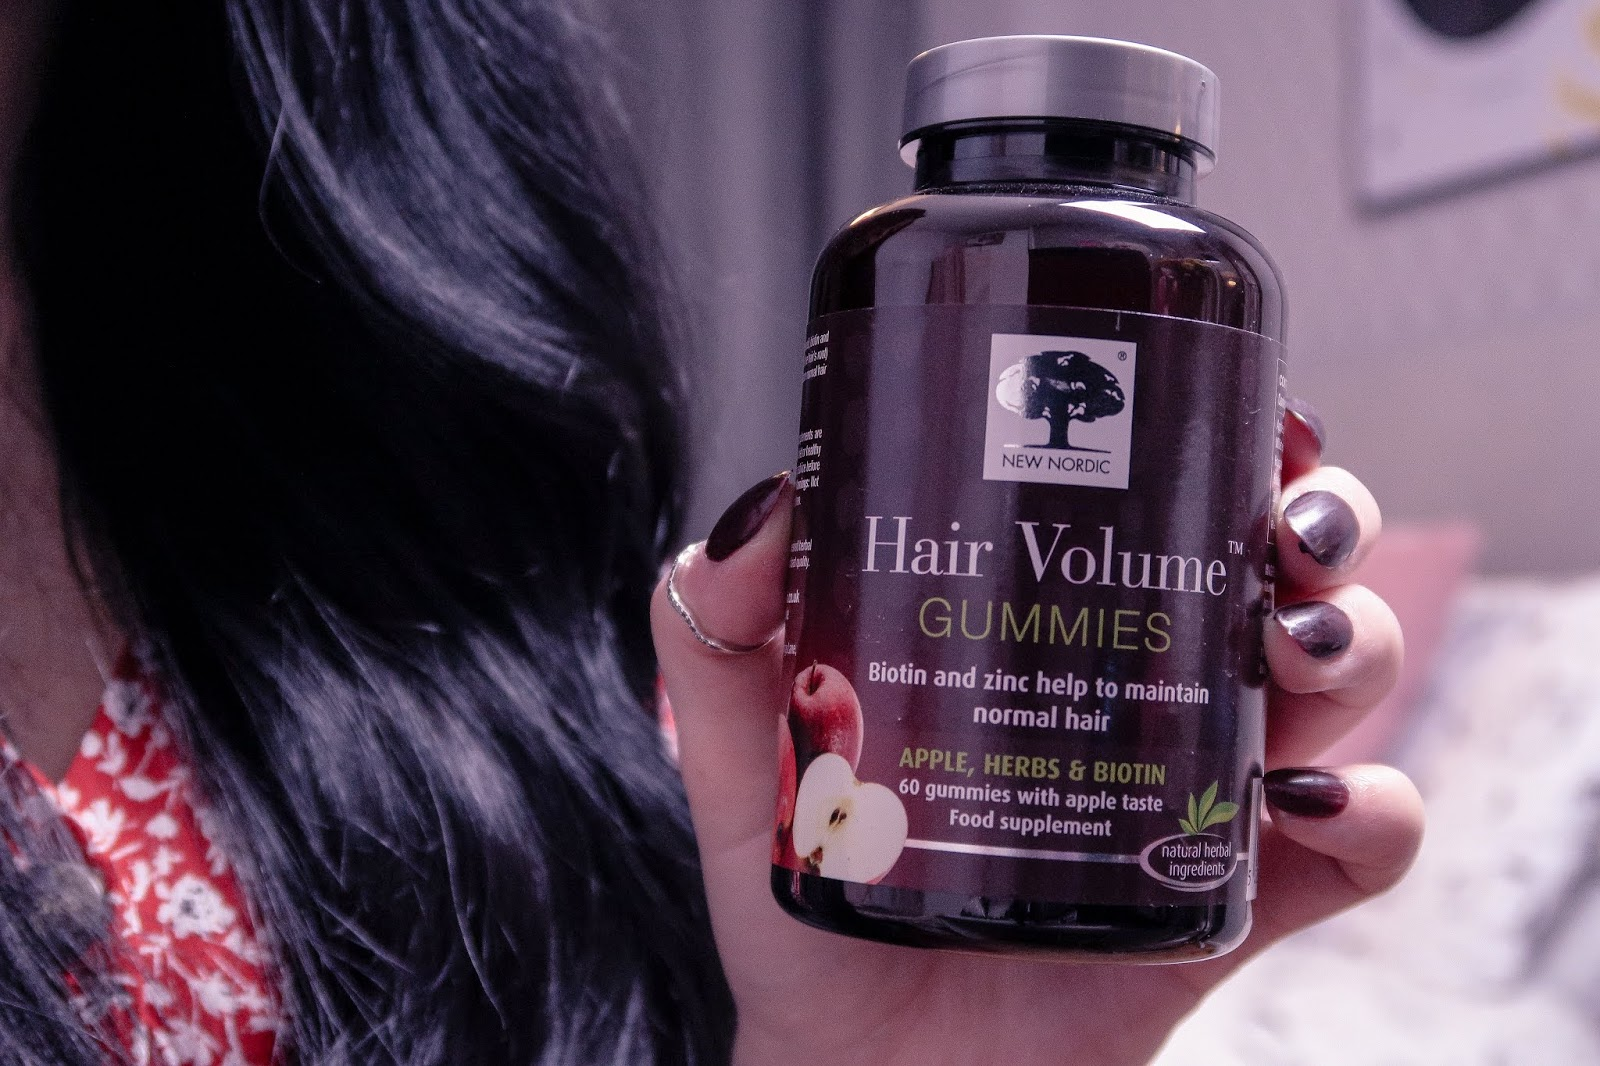 Close up photo of girl holding New Nordic Hair Volume gummy Supplements - Wearing a red dress with white flowers, long black curled hair over left shoulder, New Nordic Supplements bottle is dark purple with white writing.